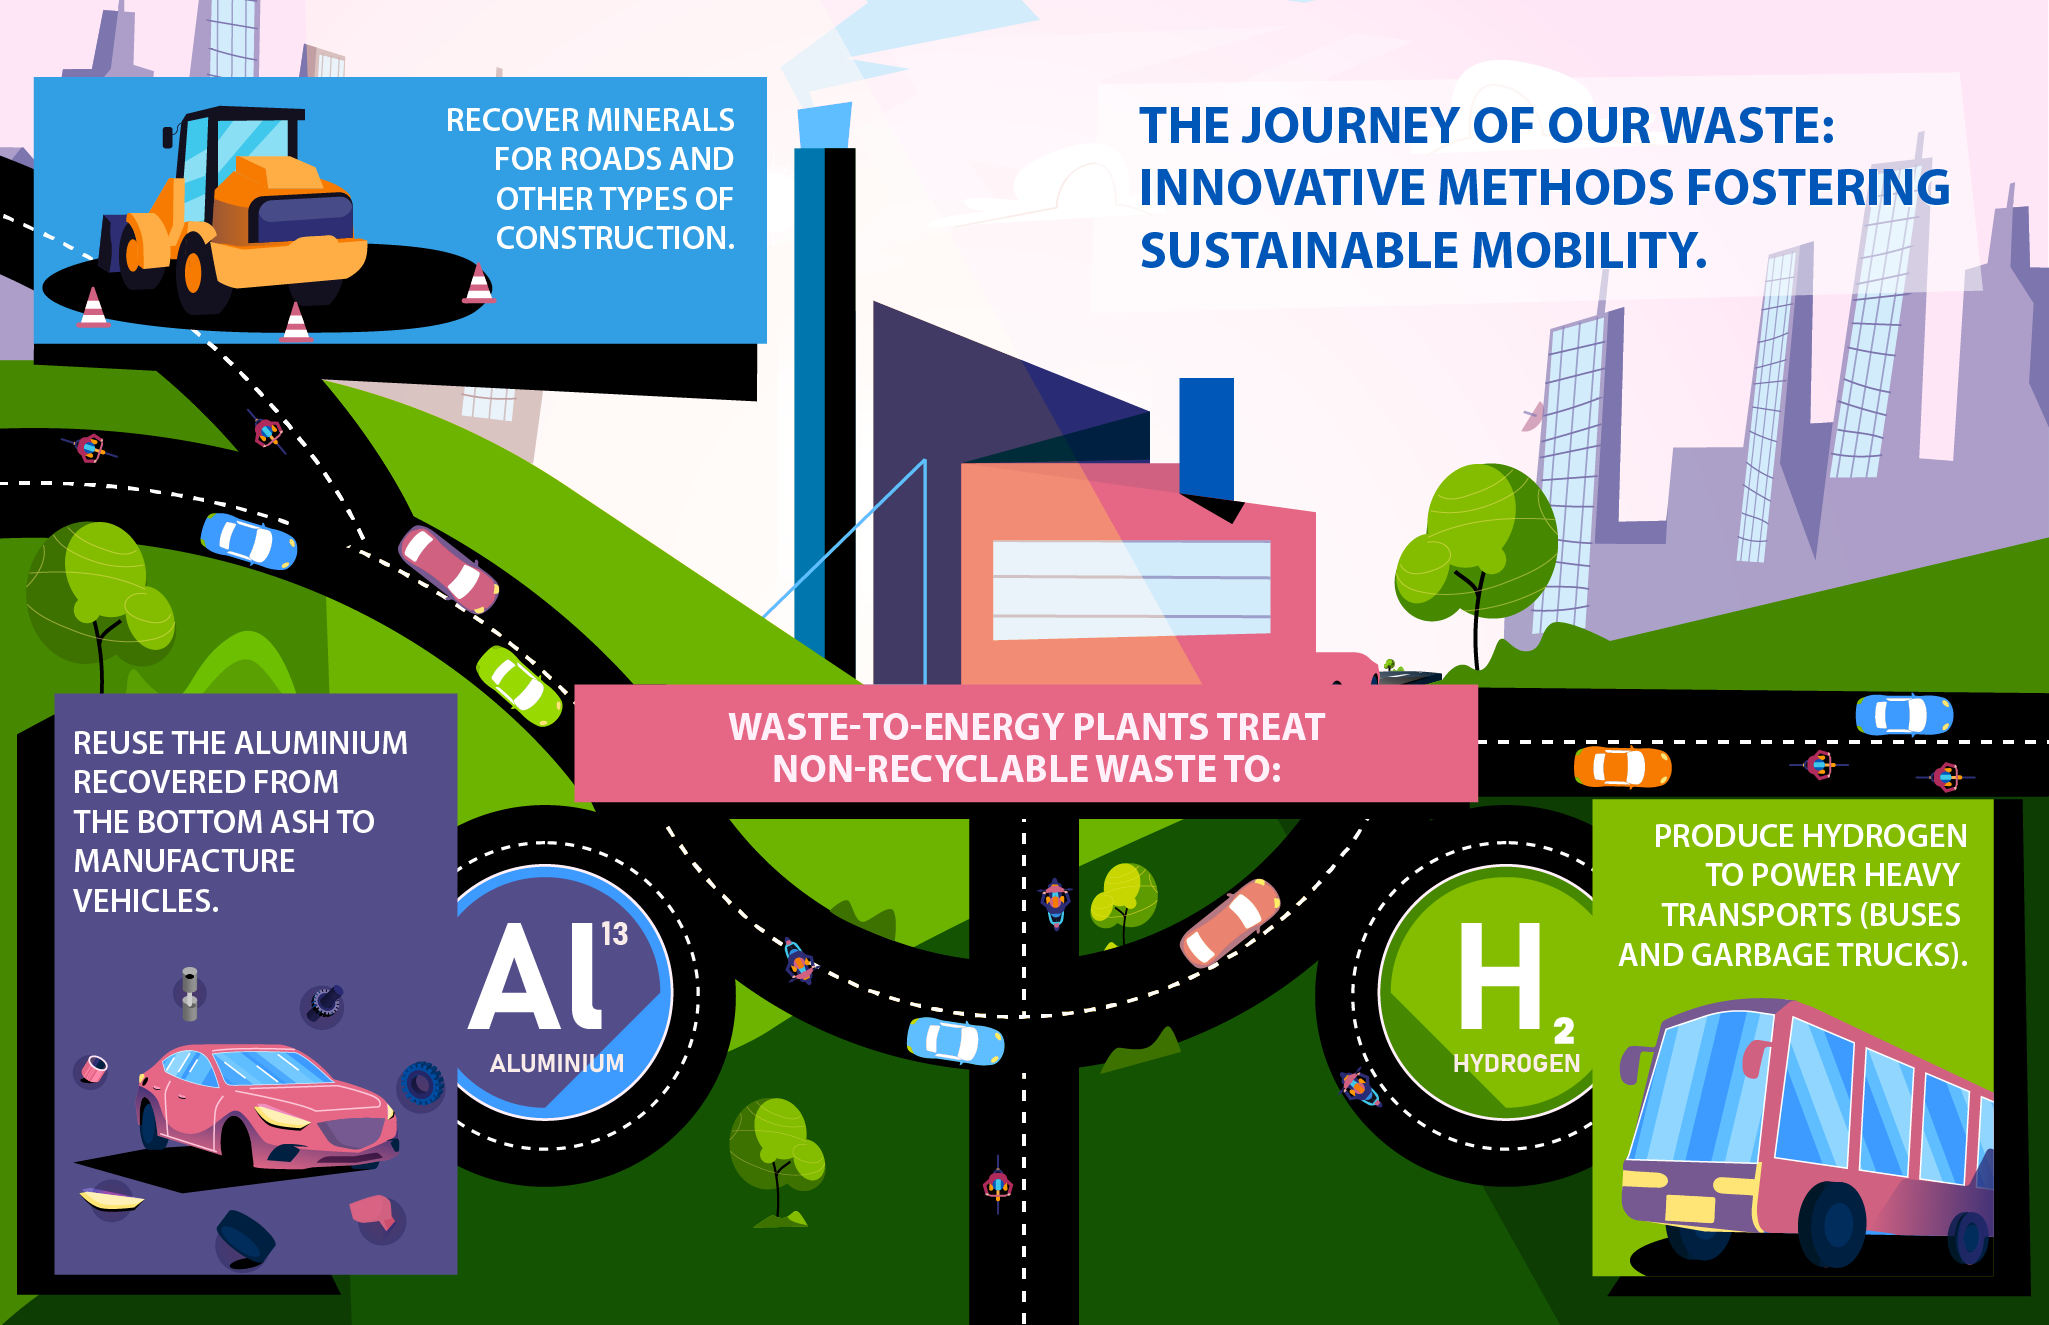 The Journey of our Waste_Infographic